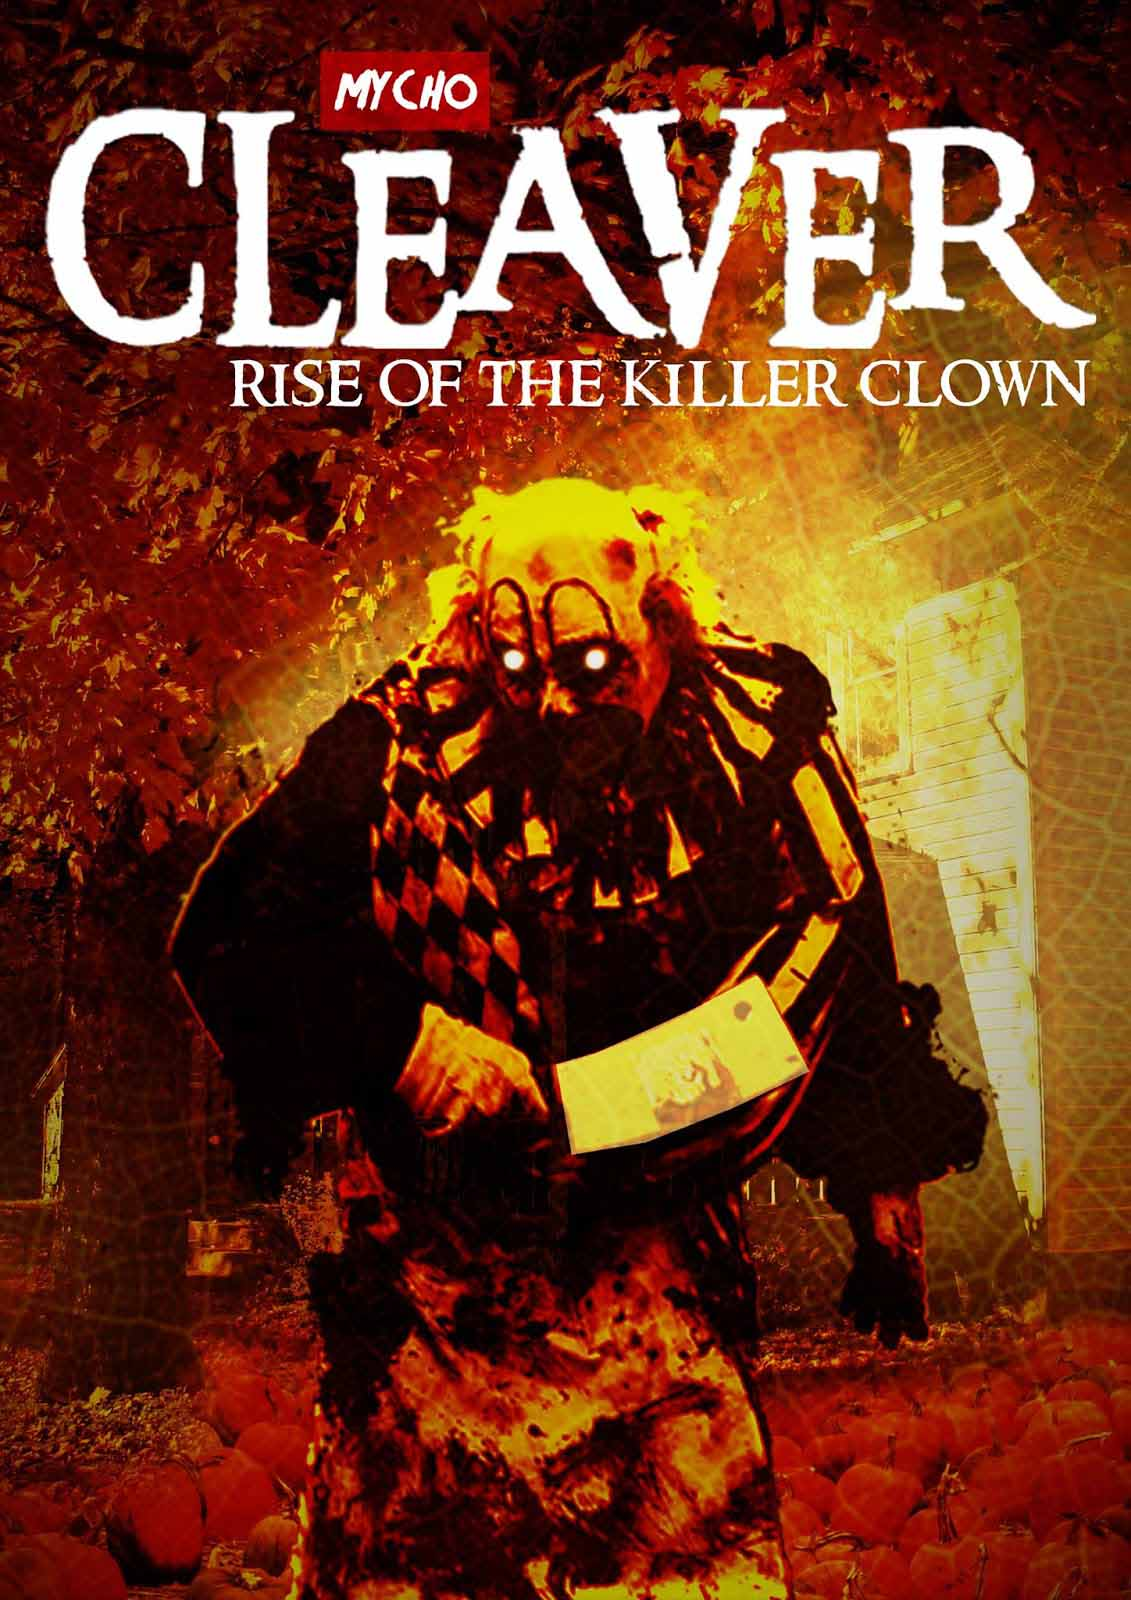 Cleaver rise of the killer clown 2015 review horror movie for Killer clown movie